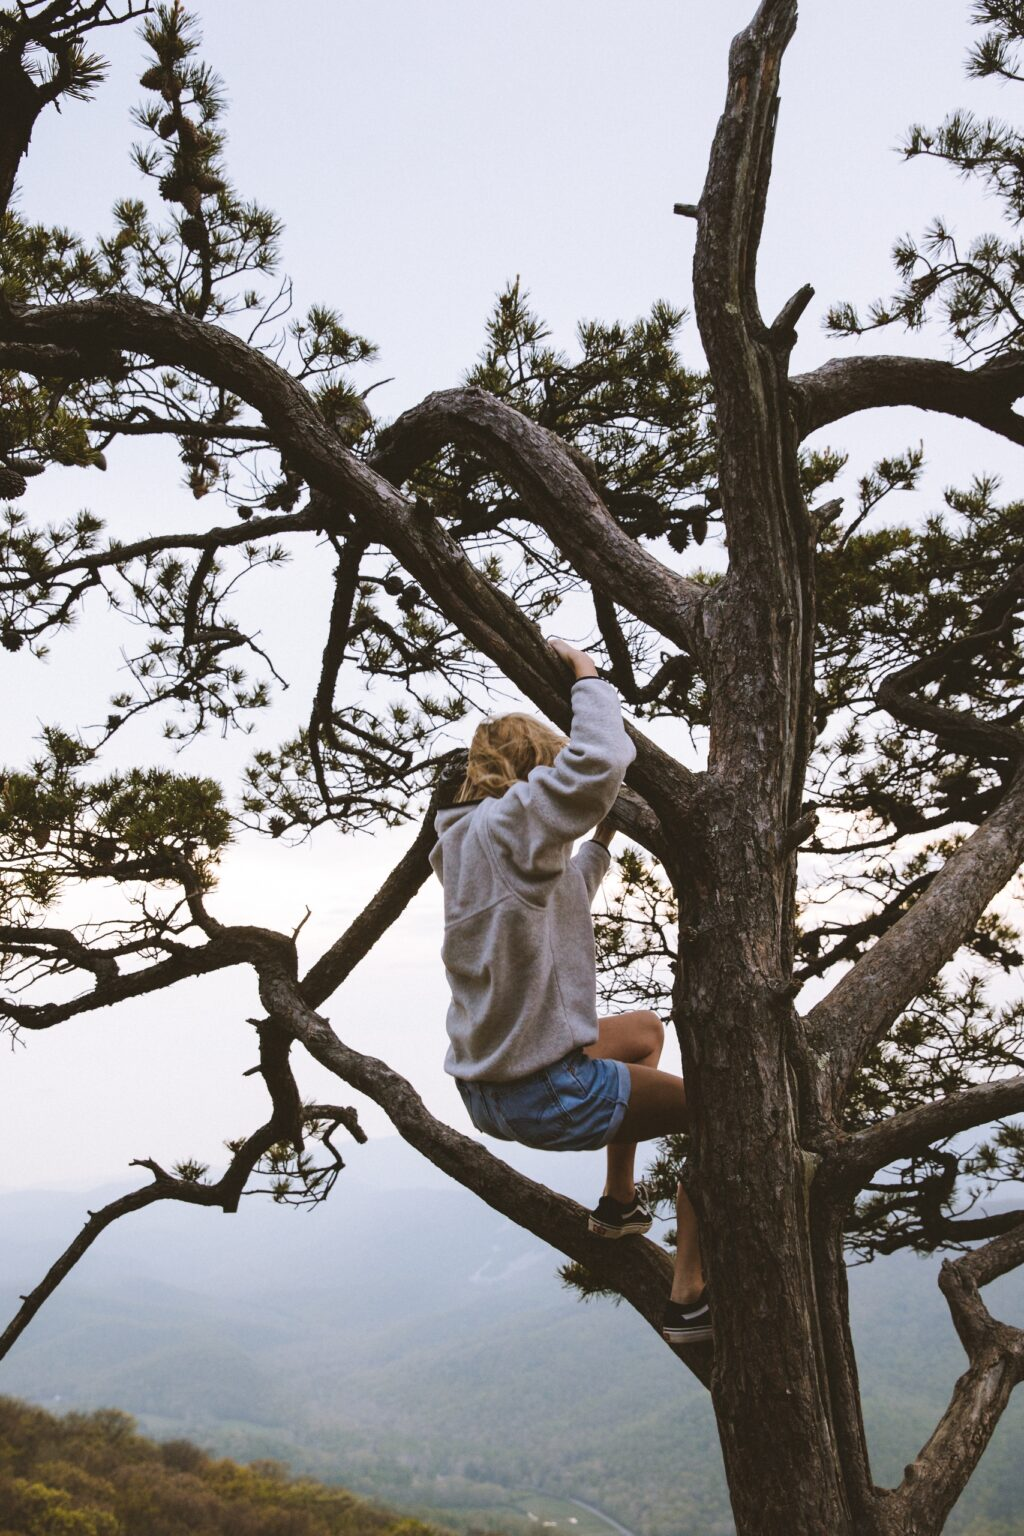 Person in tree exploring trying new things climbing hopeful